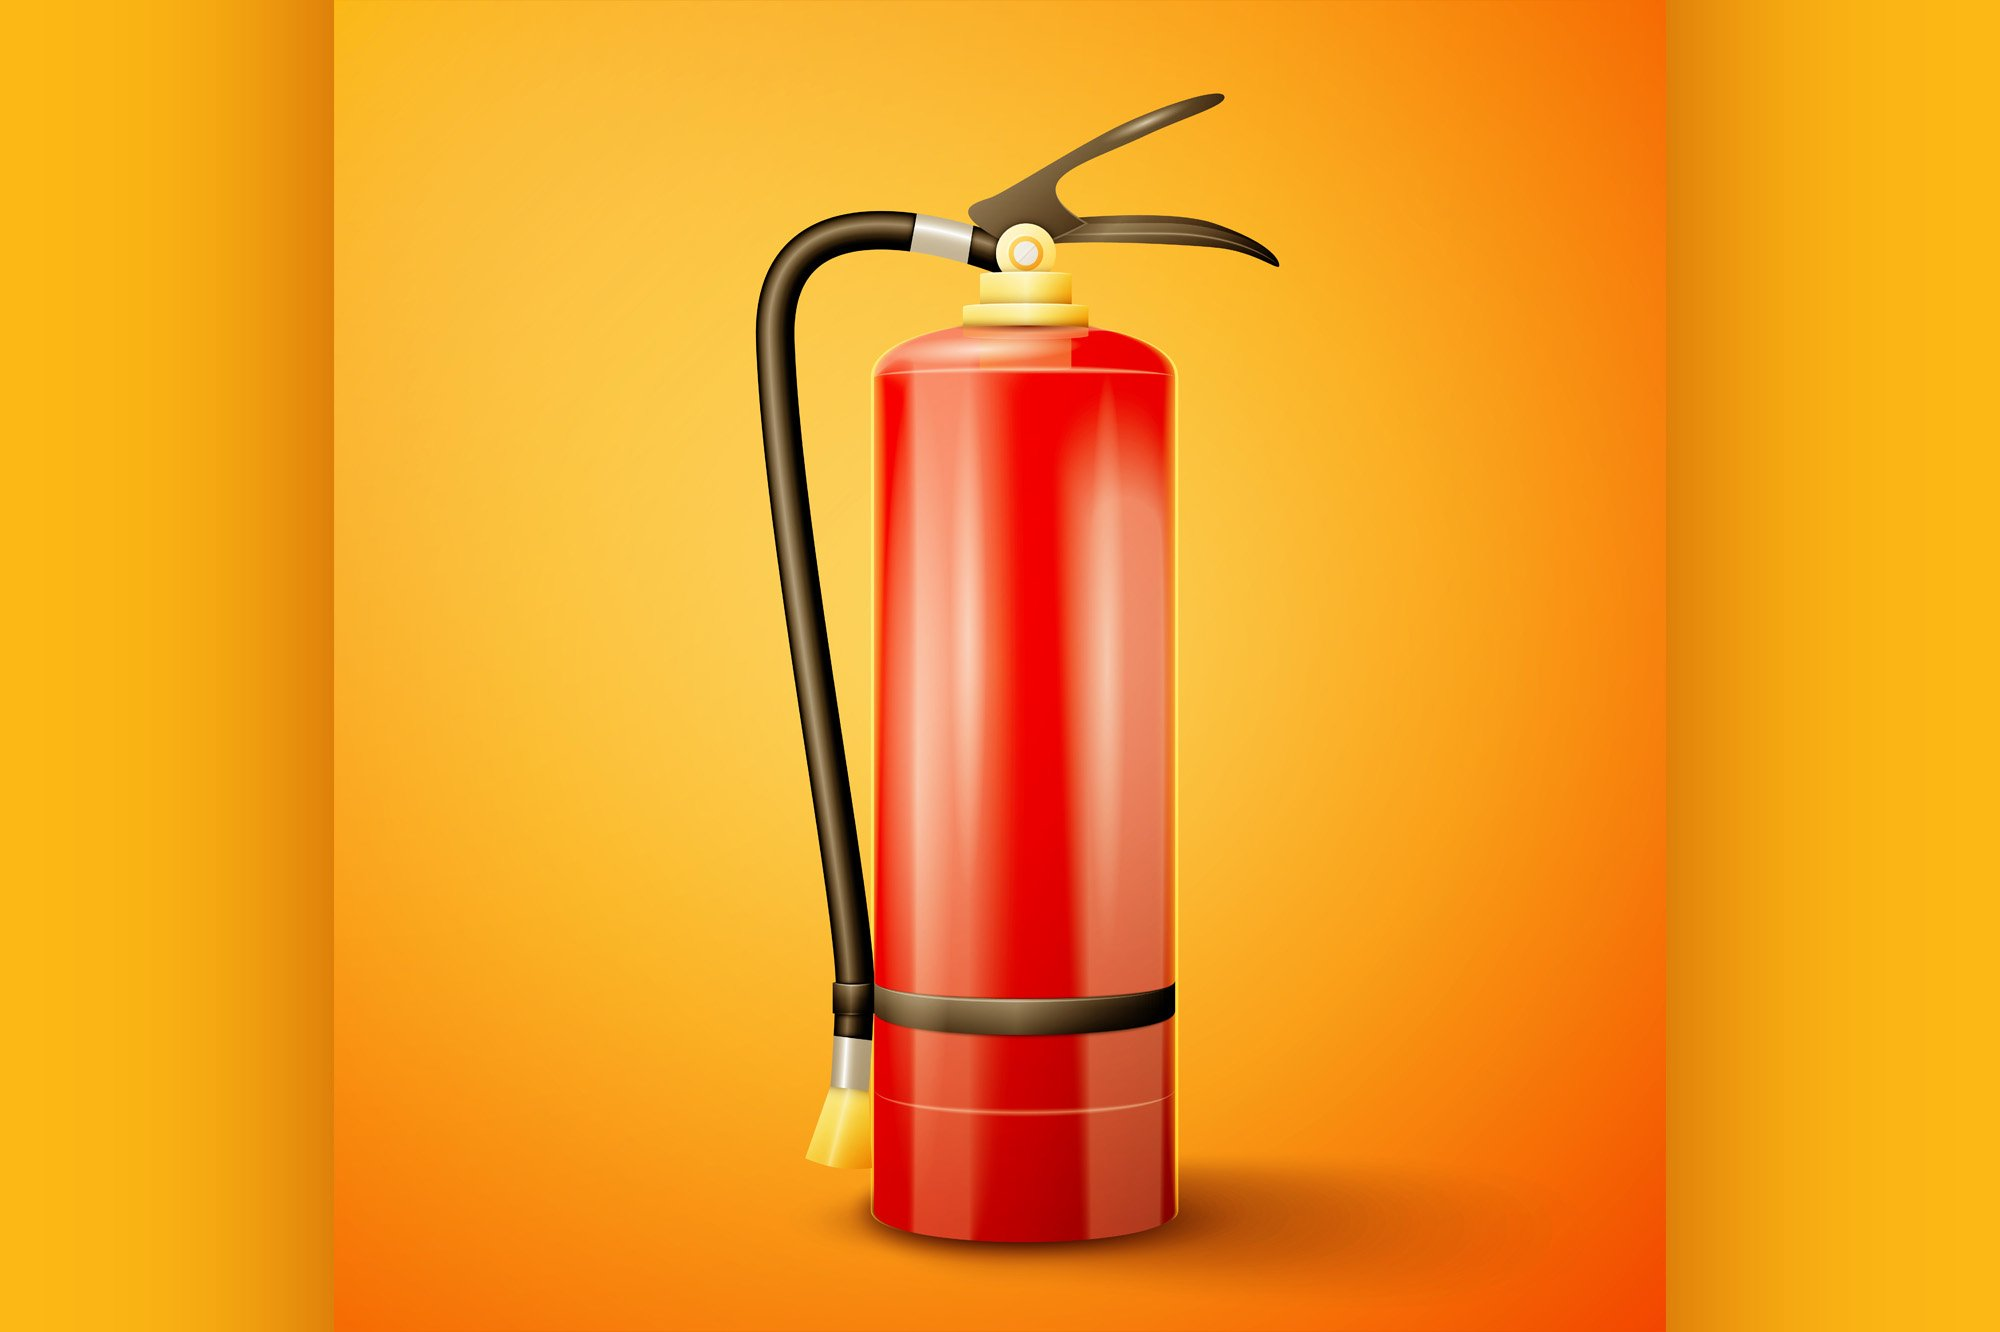 Red Fire extinguisher example image 1